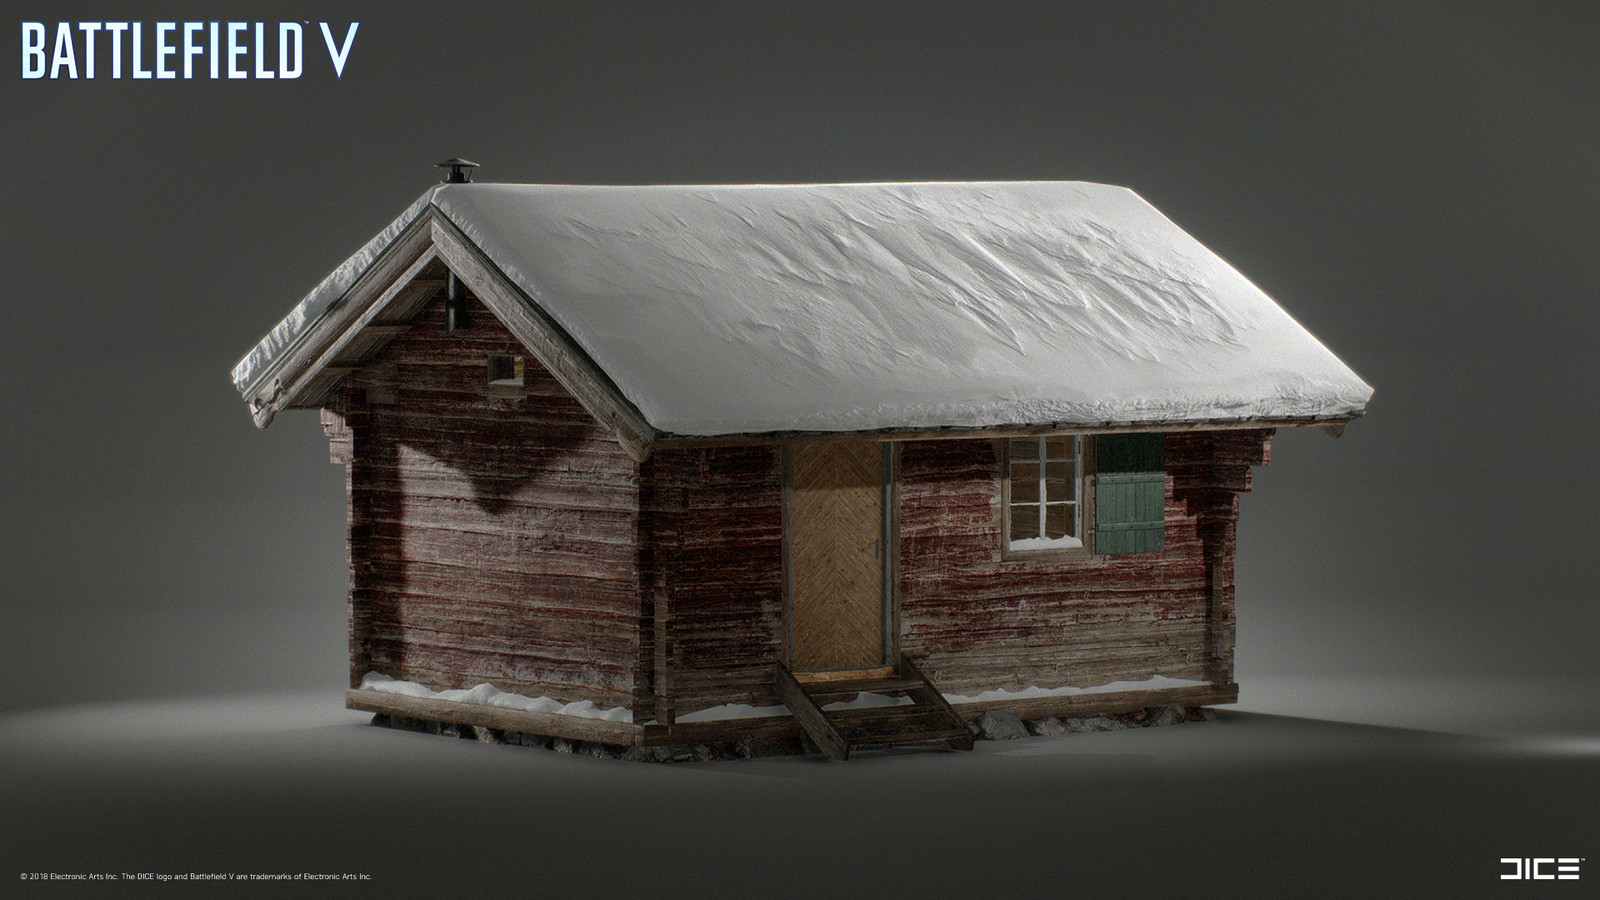 Model and textured houses on Fjell 625. Base mesh by Jimmy Gustafsson, Snow meshes by Daniel Rocque Bengtsson, destruction by Ludwig Lindstål